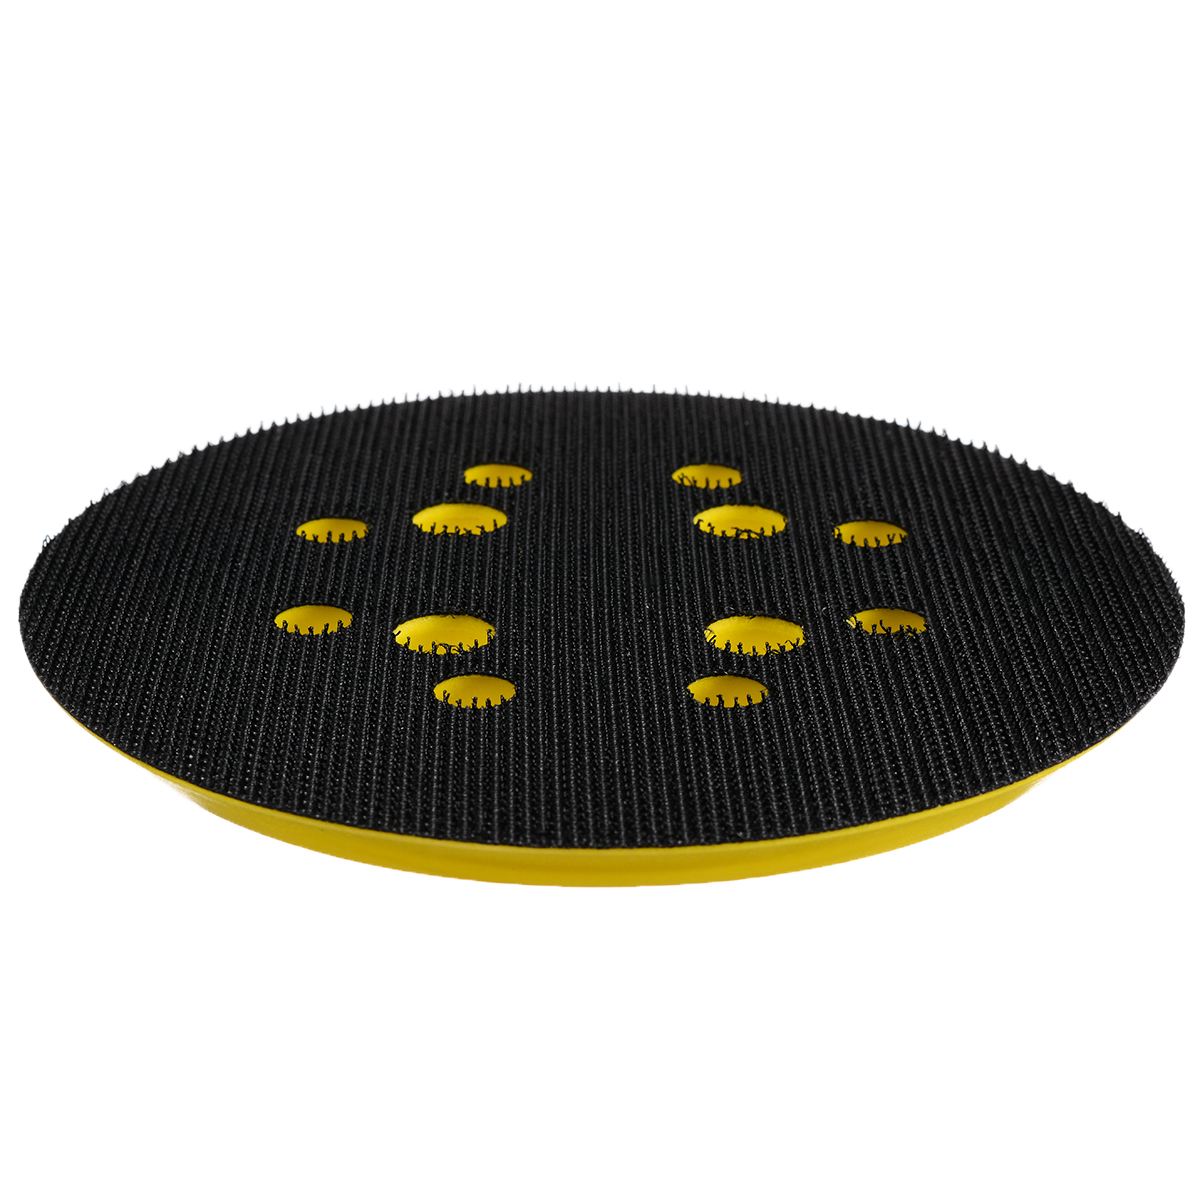 Image 5 - 5 Inch 8 Hole 125mm Back up Sanding Pad 4 Nails Hook and Loop Sander Backing Pad for Electric Grinder Power Tools Accessories-in Abrasive Tools from Tools